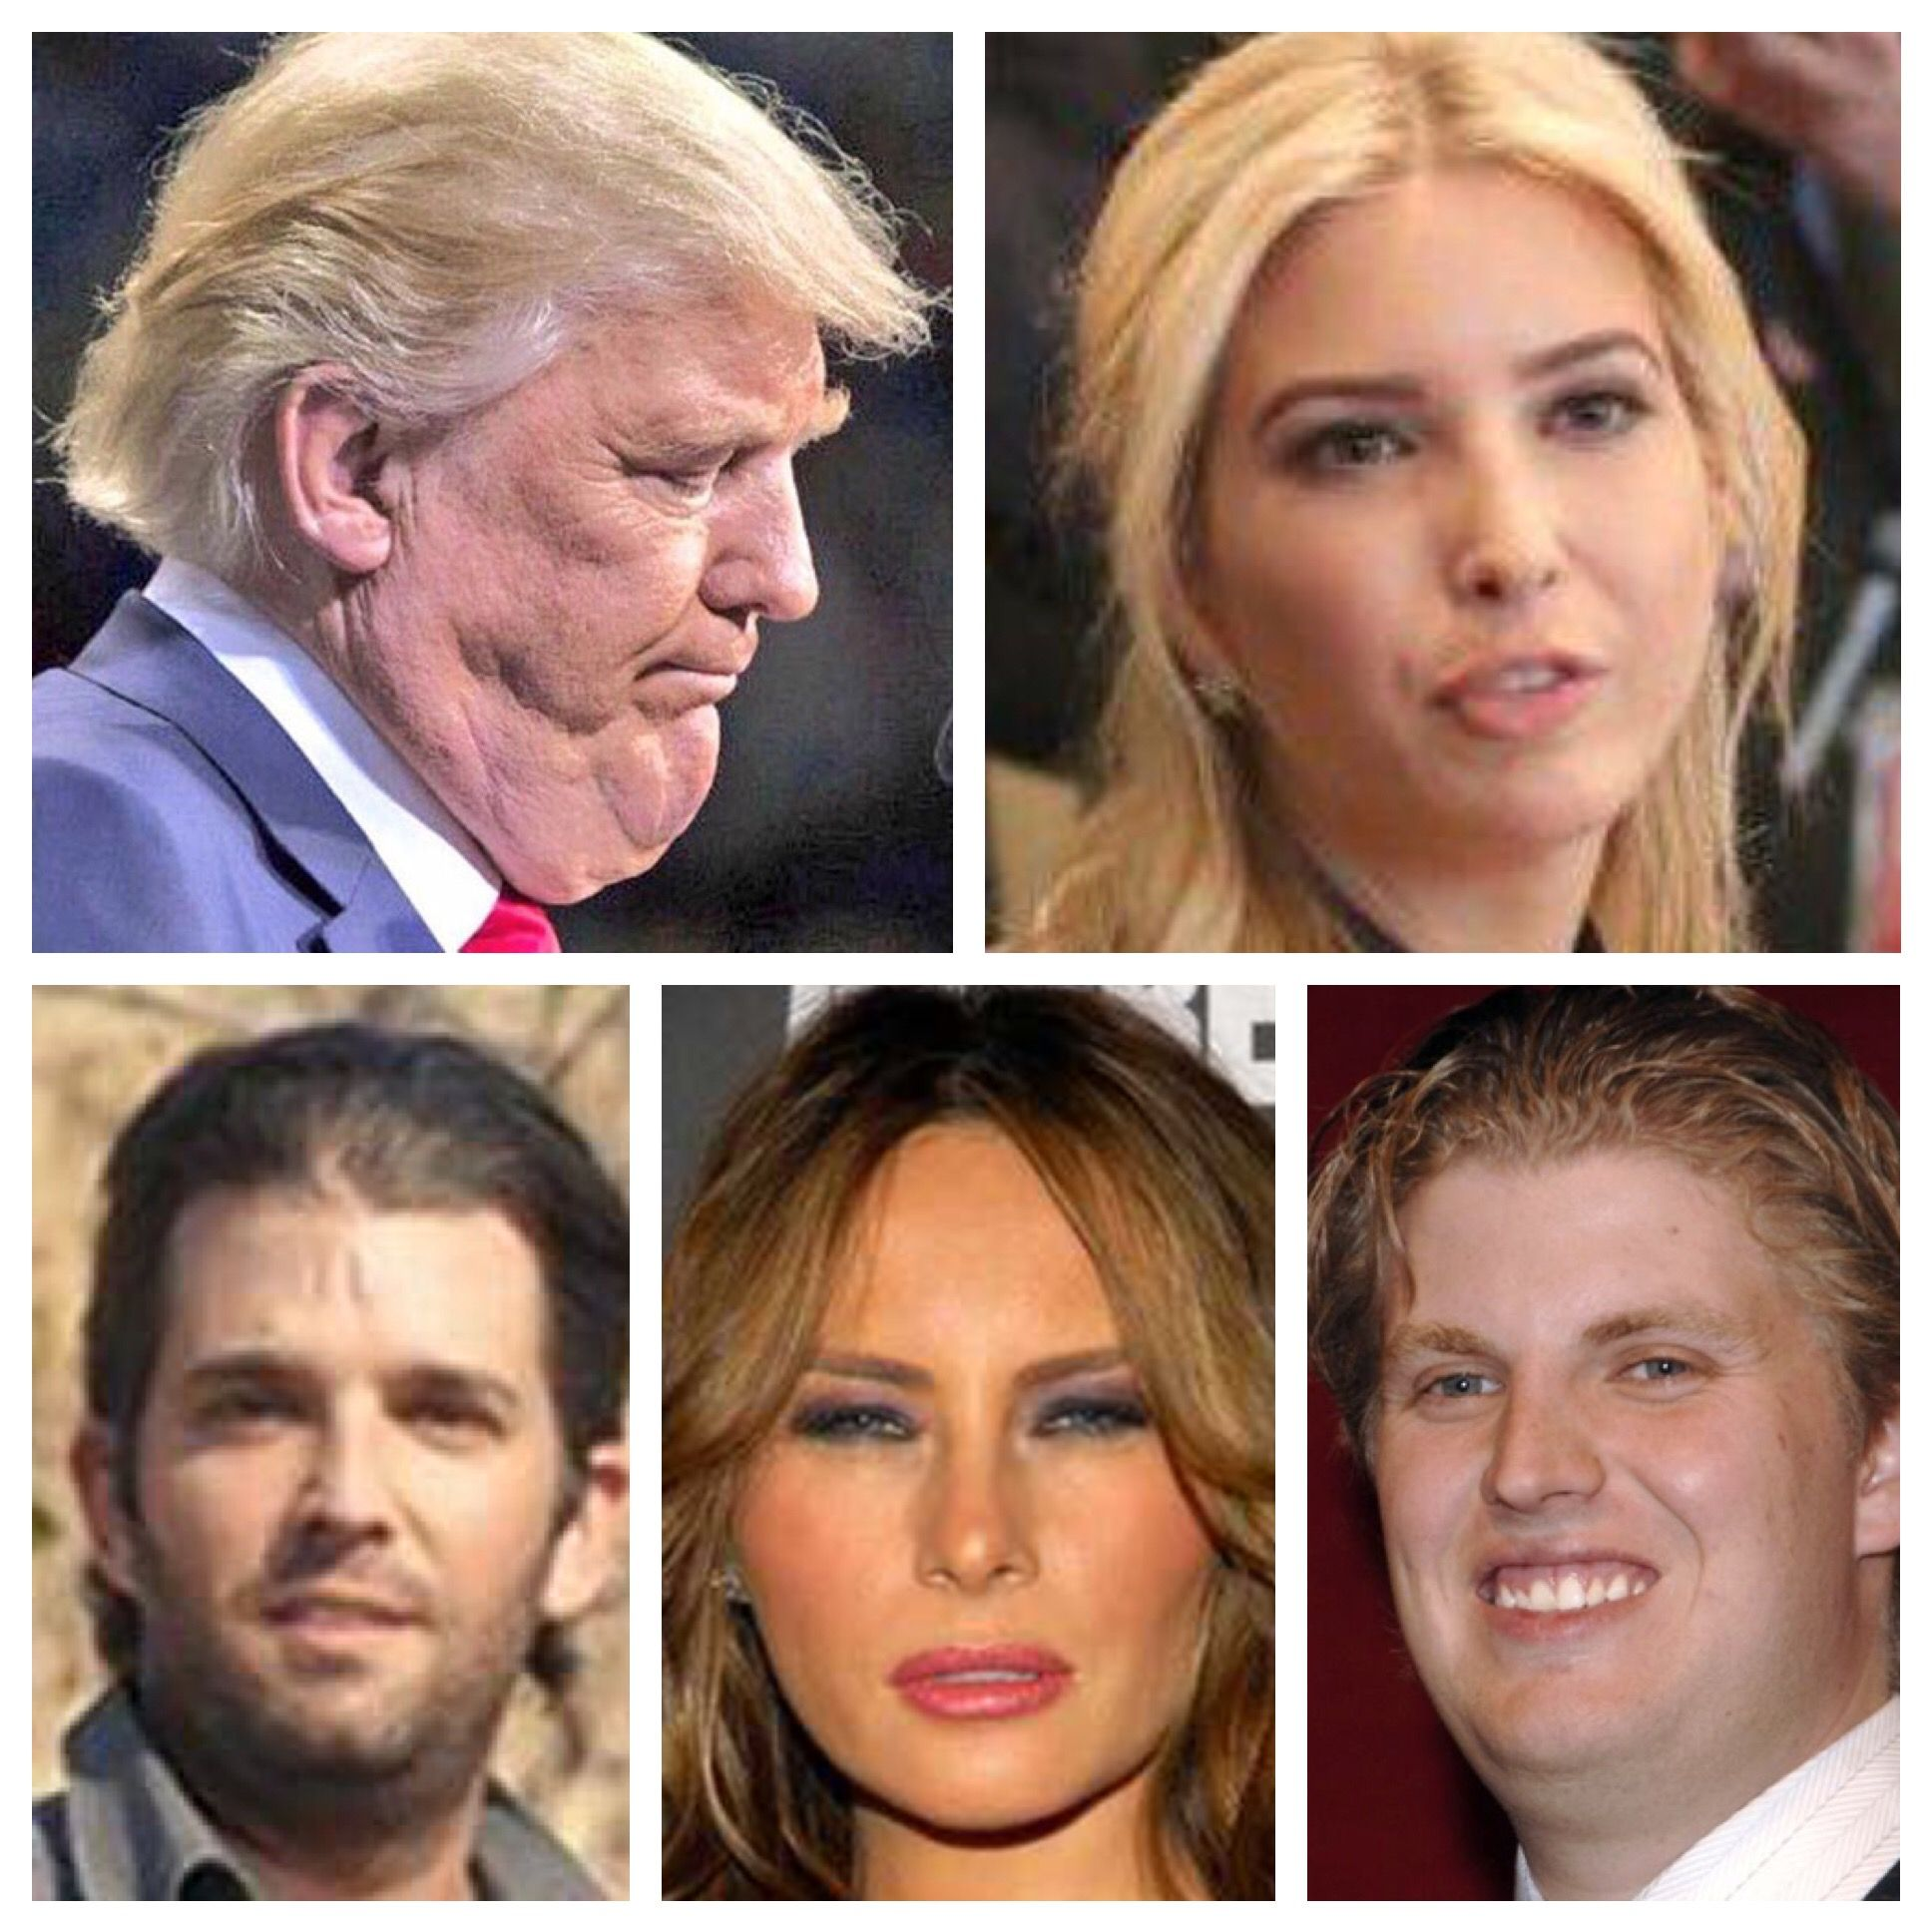 Can't wait until these grifters are out of the White House!! #TrumpleThinSkin #IvankaDerpFace #SquintyMailOrderBride #MyTwoGreaseballs  #resist #Impeach #Grifters #Traitors